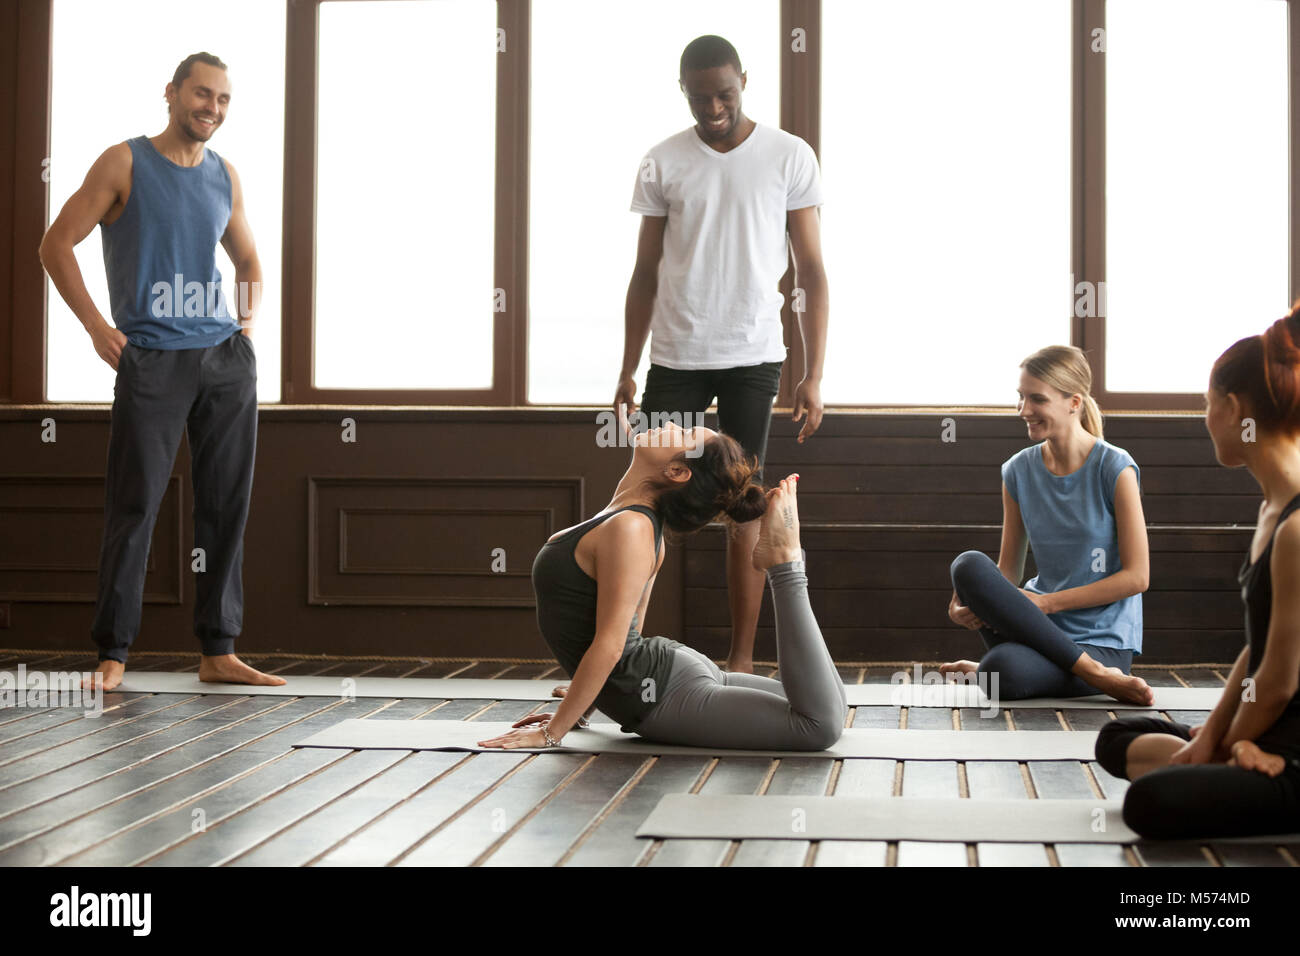 Yoga instructor performing raja bhudjangasana advanced exercise  - Stock Image